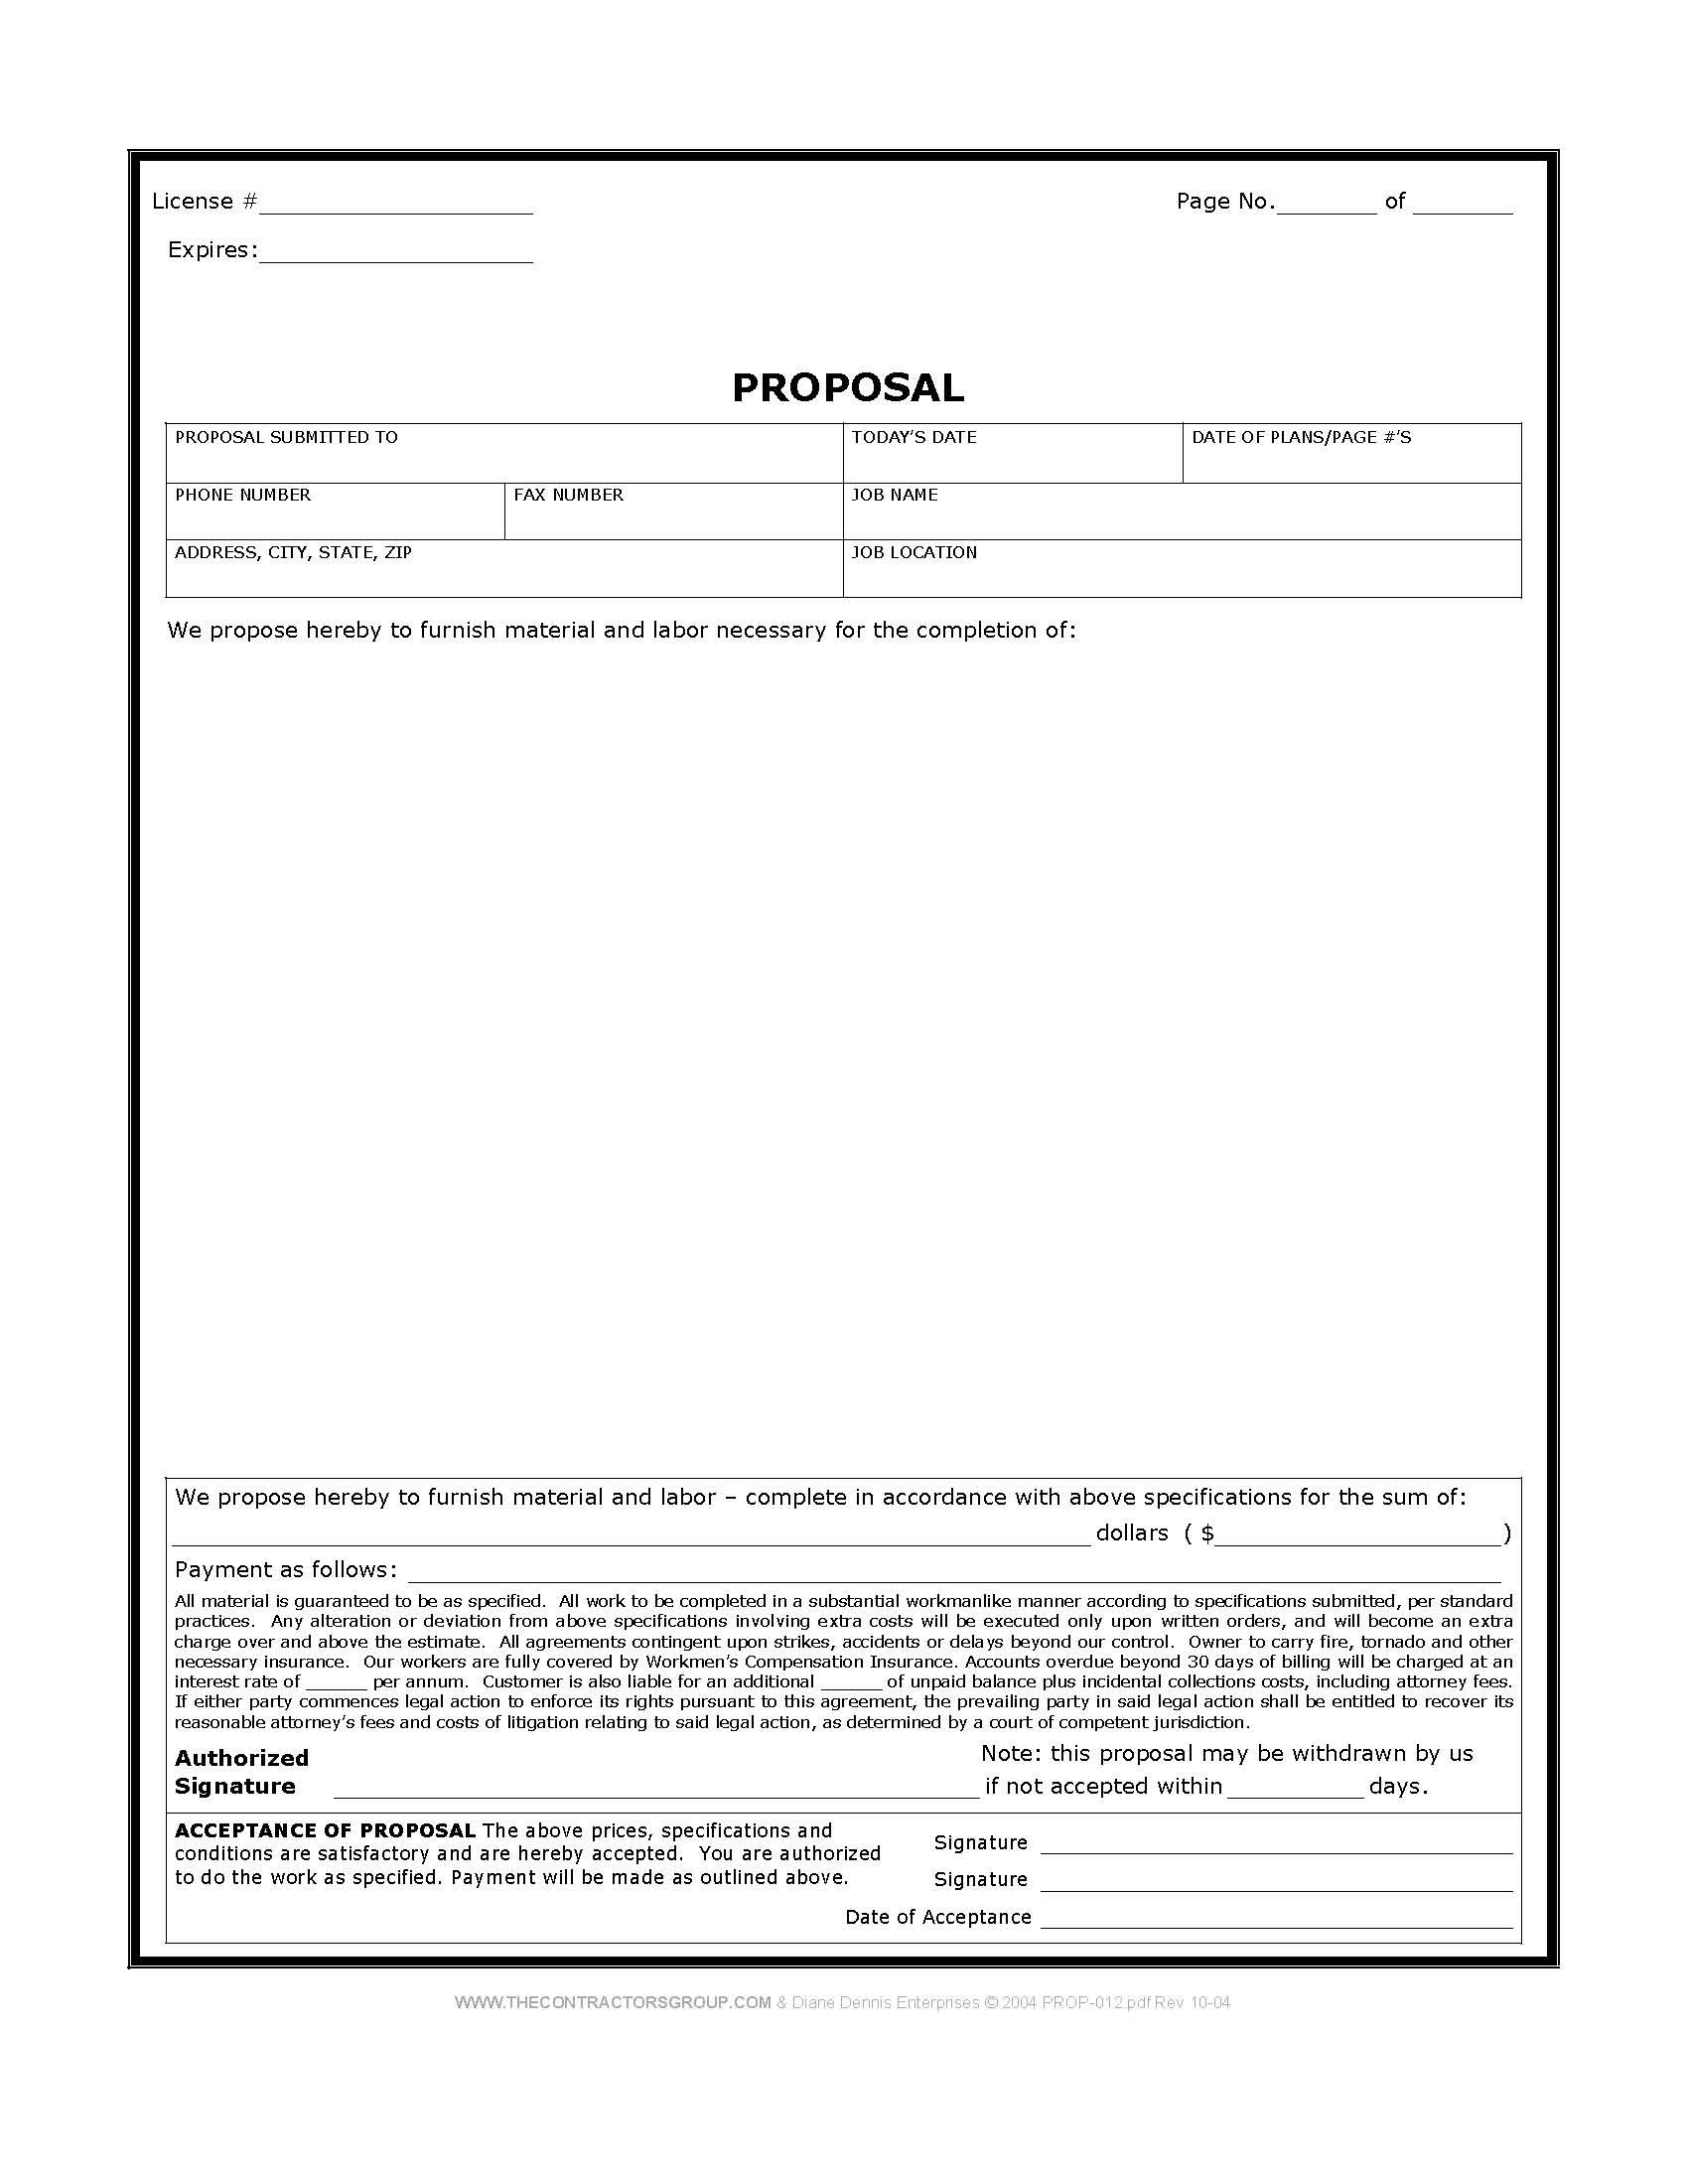 Free print contractor proposal forms construction proposal form free print contractor proposal forms construction proposal form bid form estimate form style altavistaventures Gallery